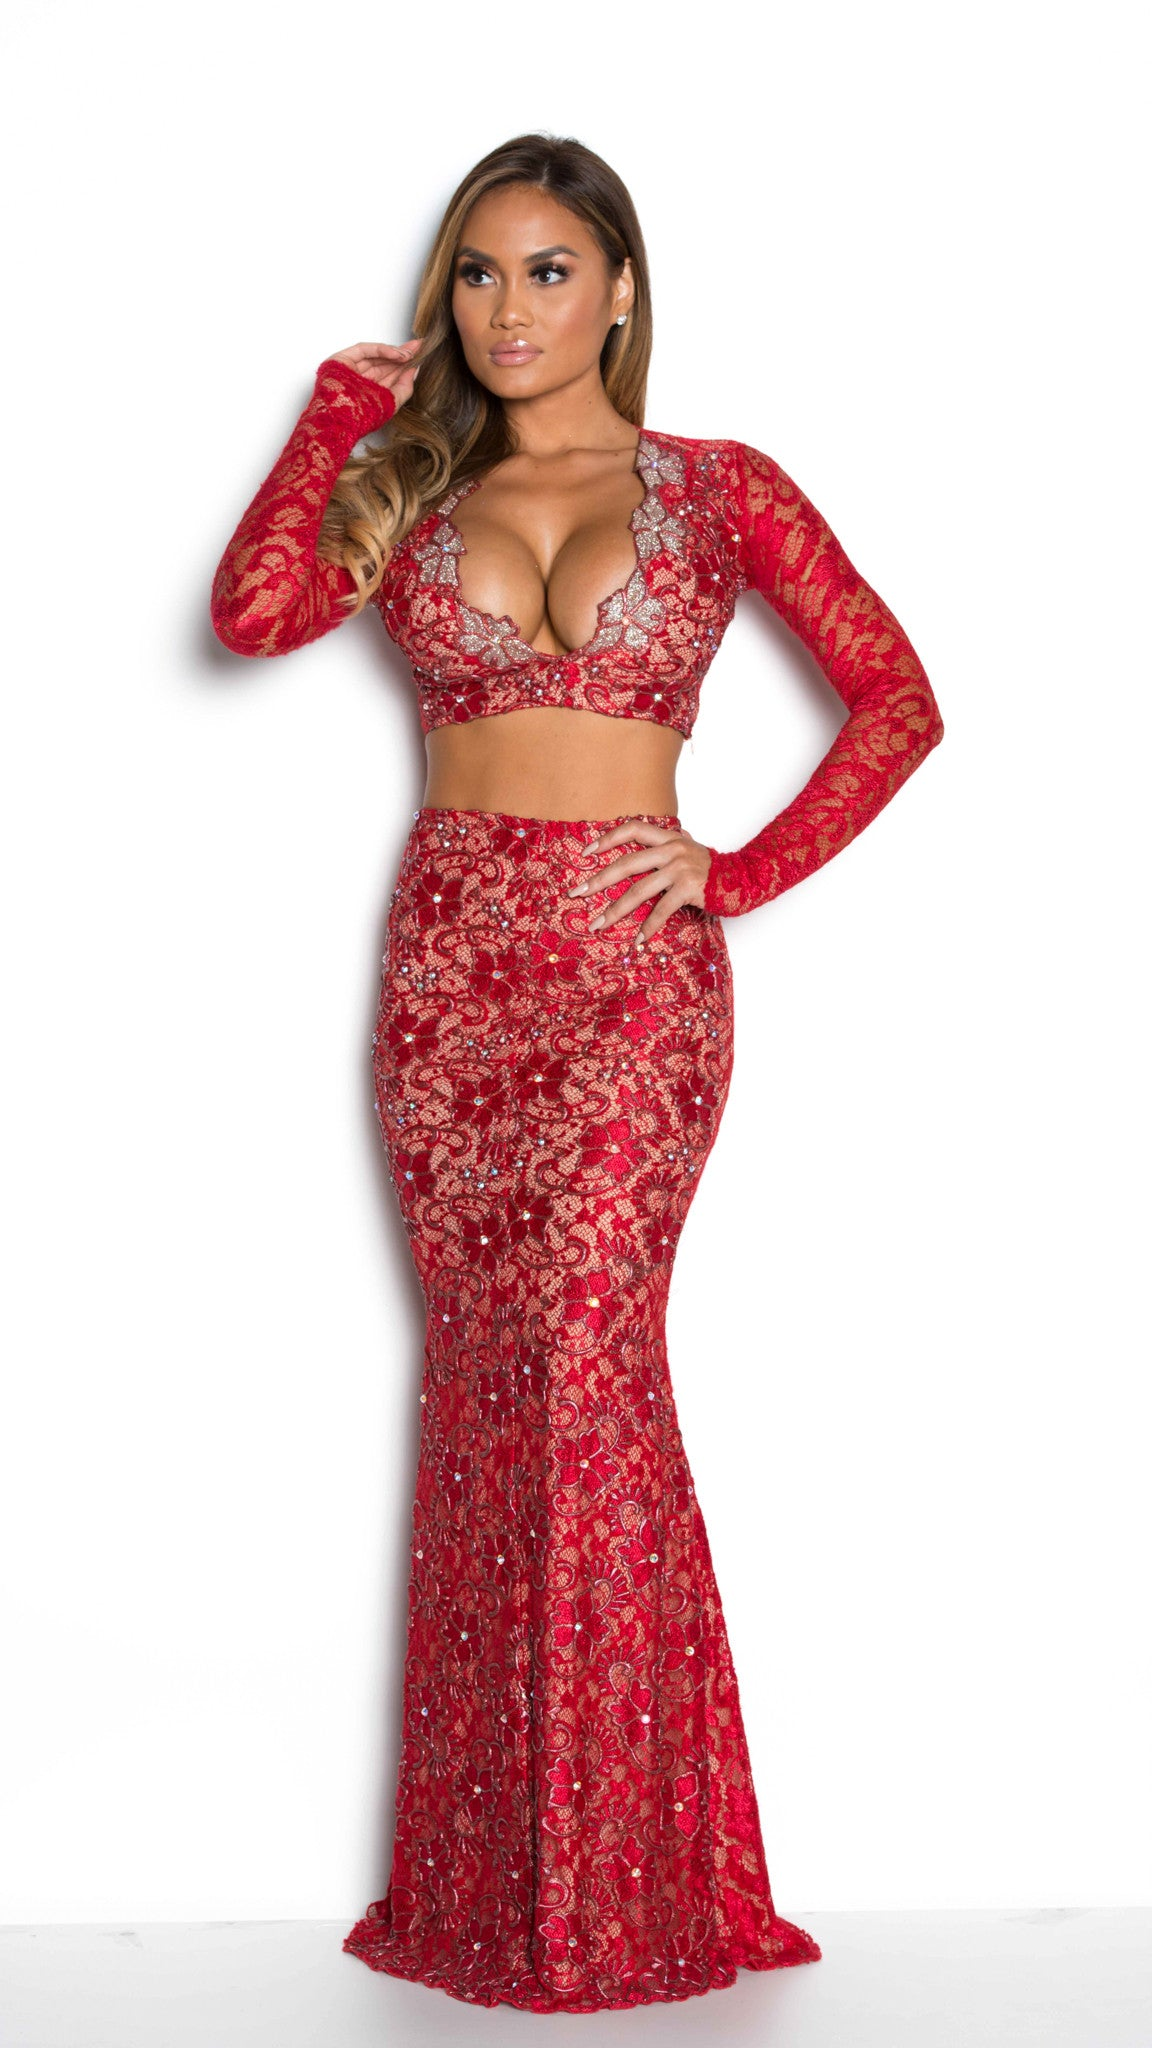 AVANNI LACE GOWN - 12 COLORS